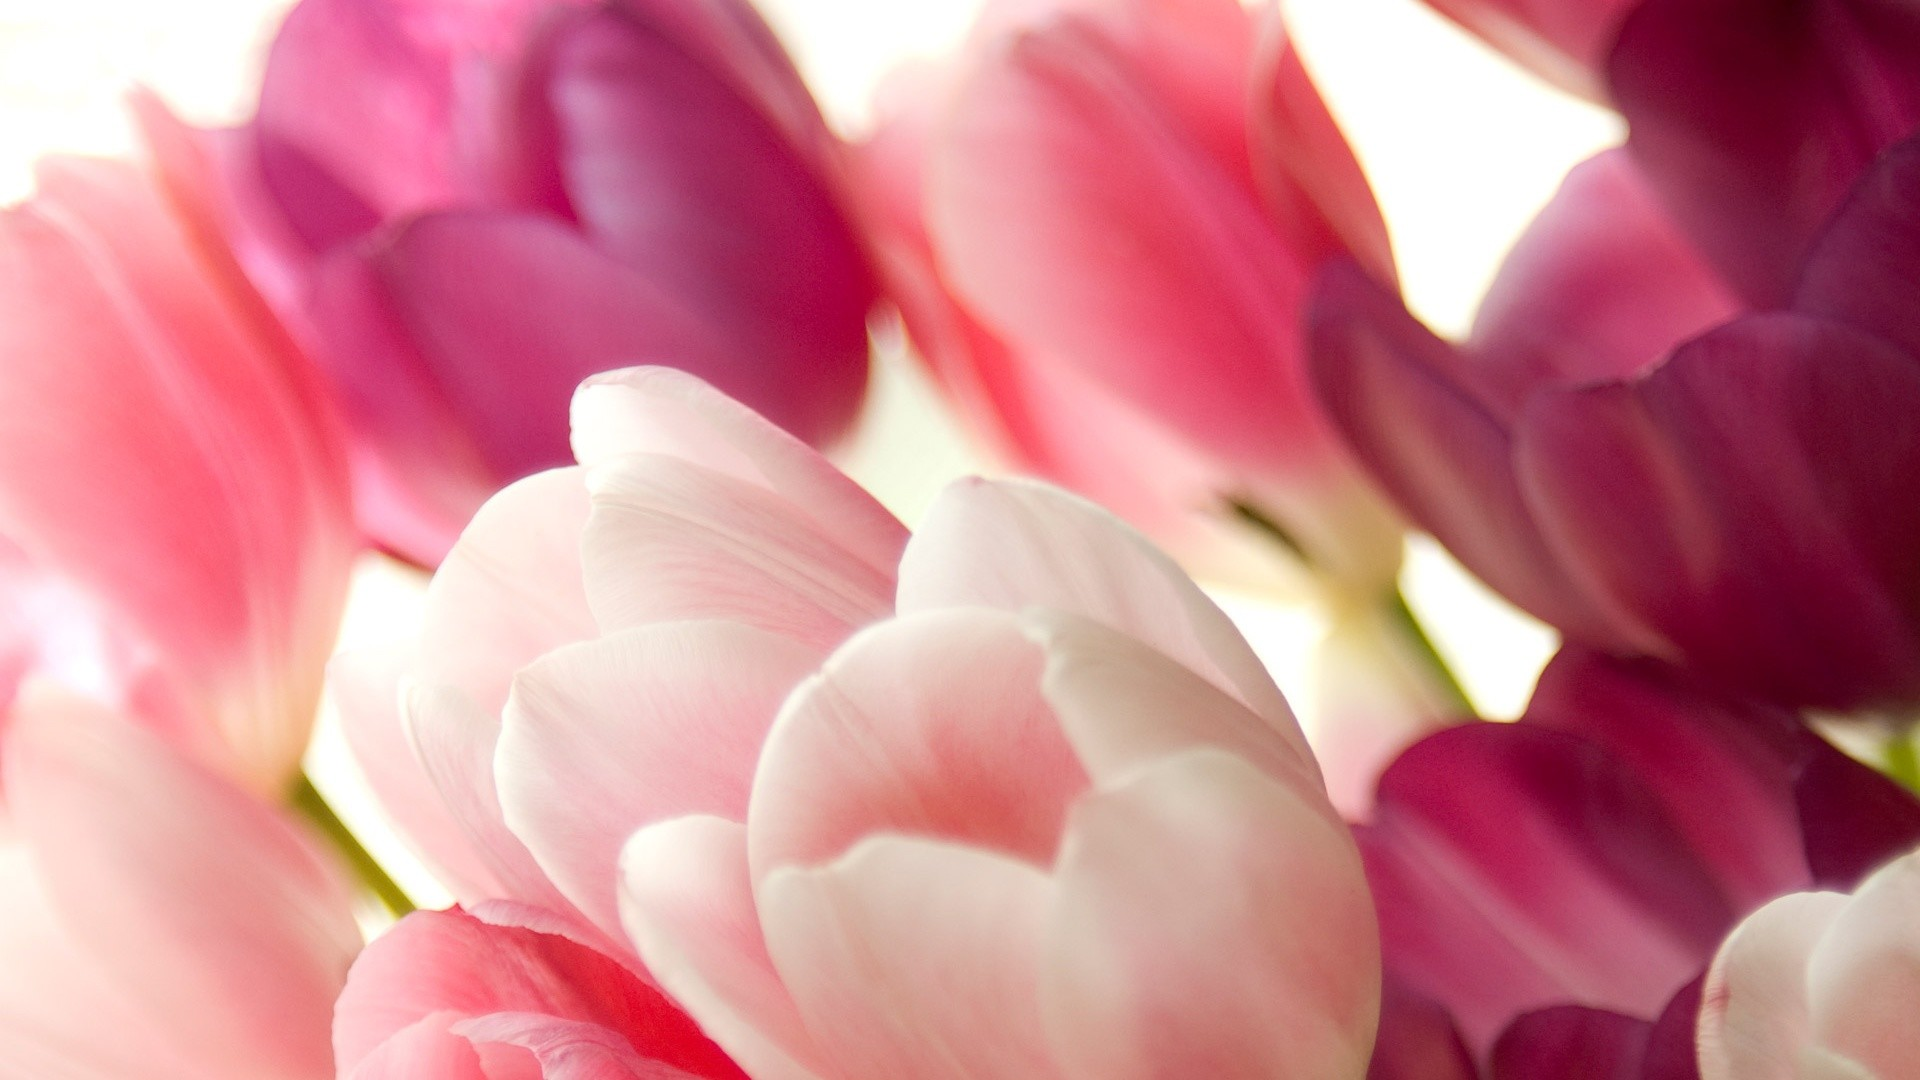 1920x1080 Pink Tulips Wallpapers Wallpaper 1280×1024 Tulips Images Wallpapers (45  Wallpapers) | Adorable Wallpapers | Desktop | Pinterest | Tulips flowers  and ...